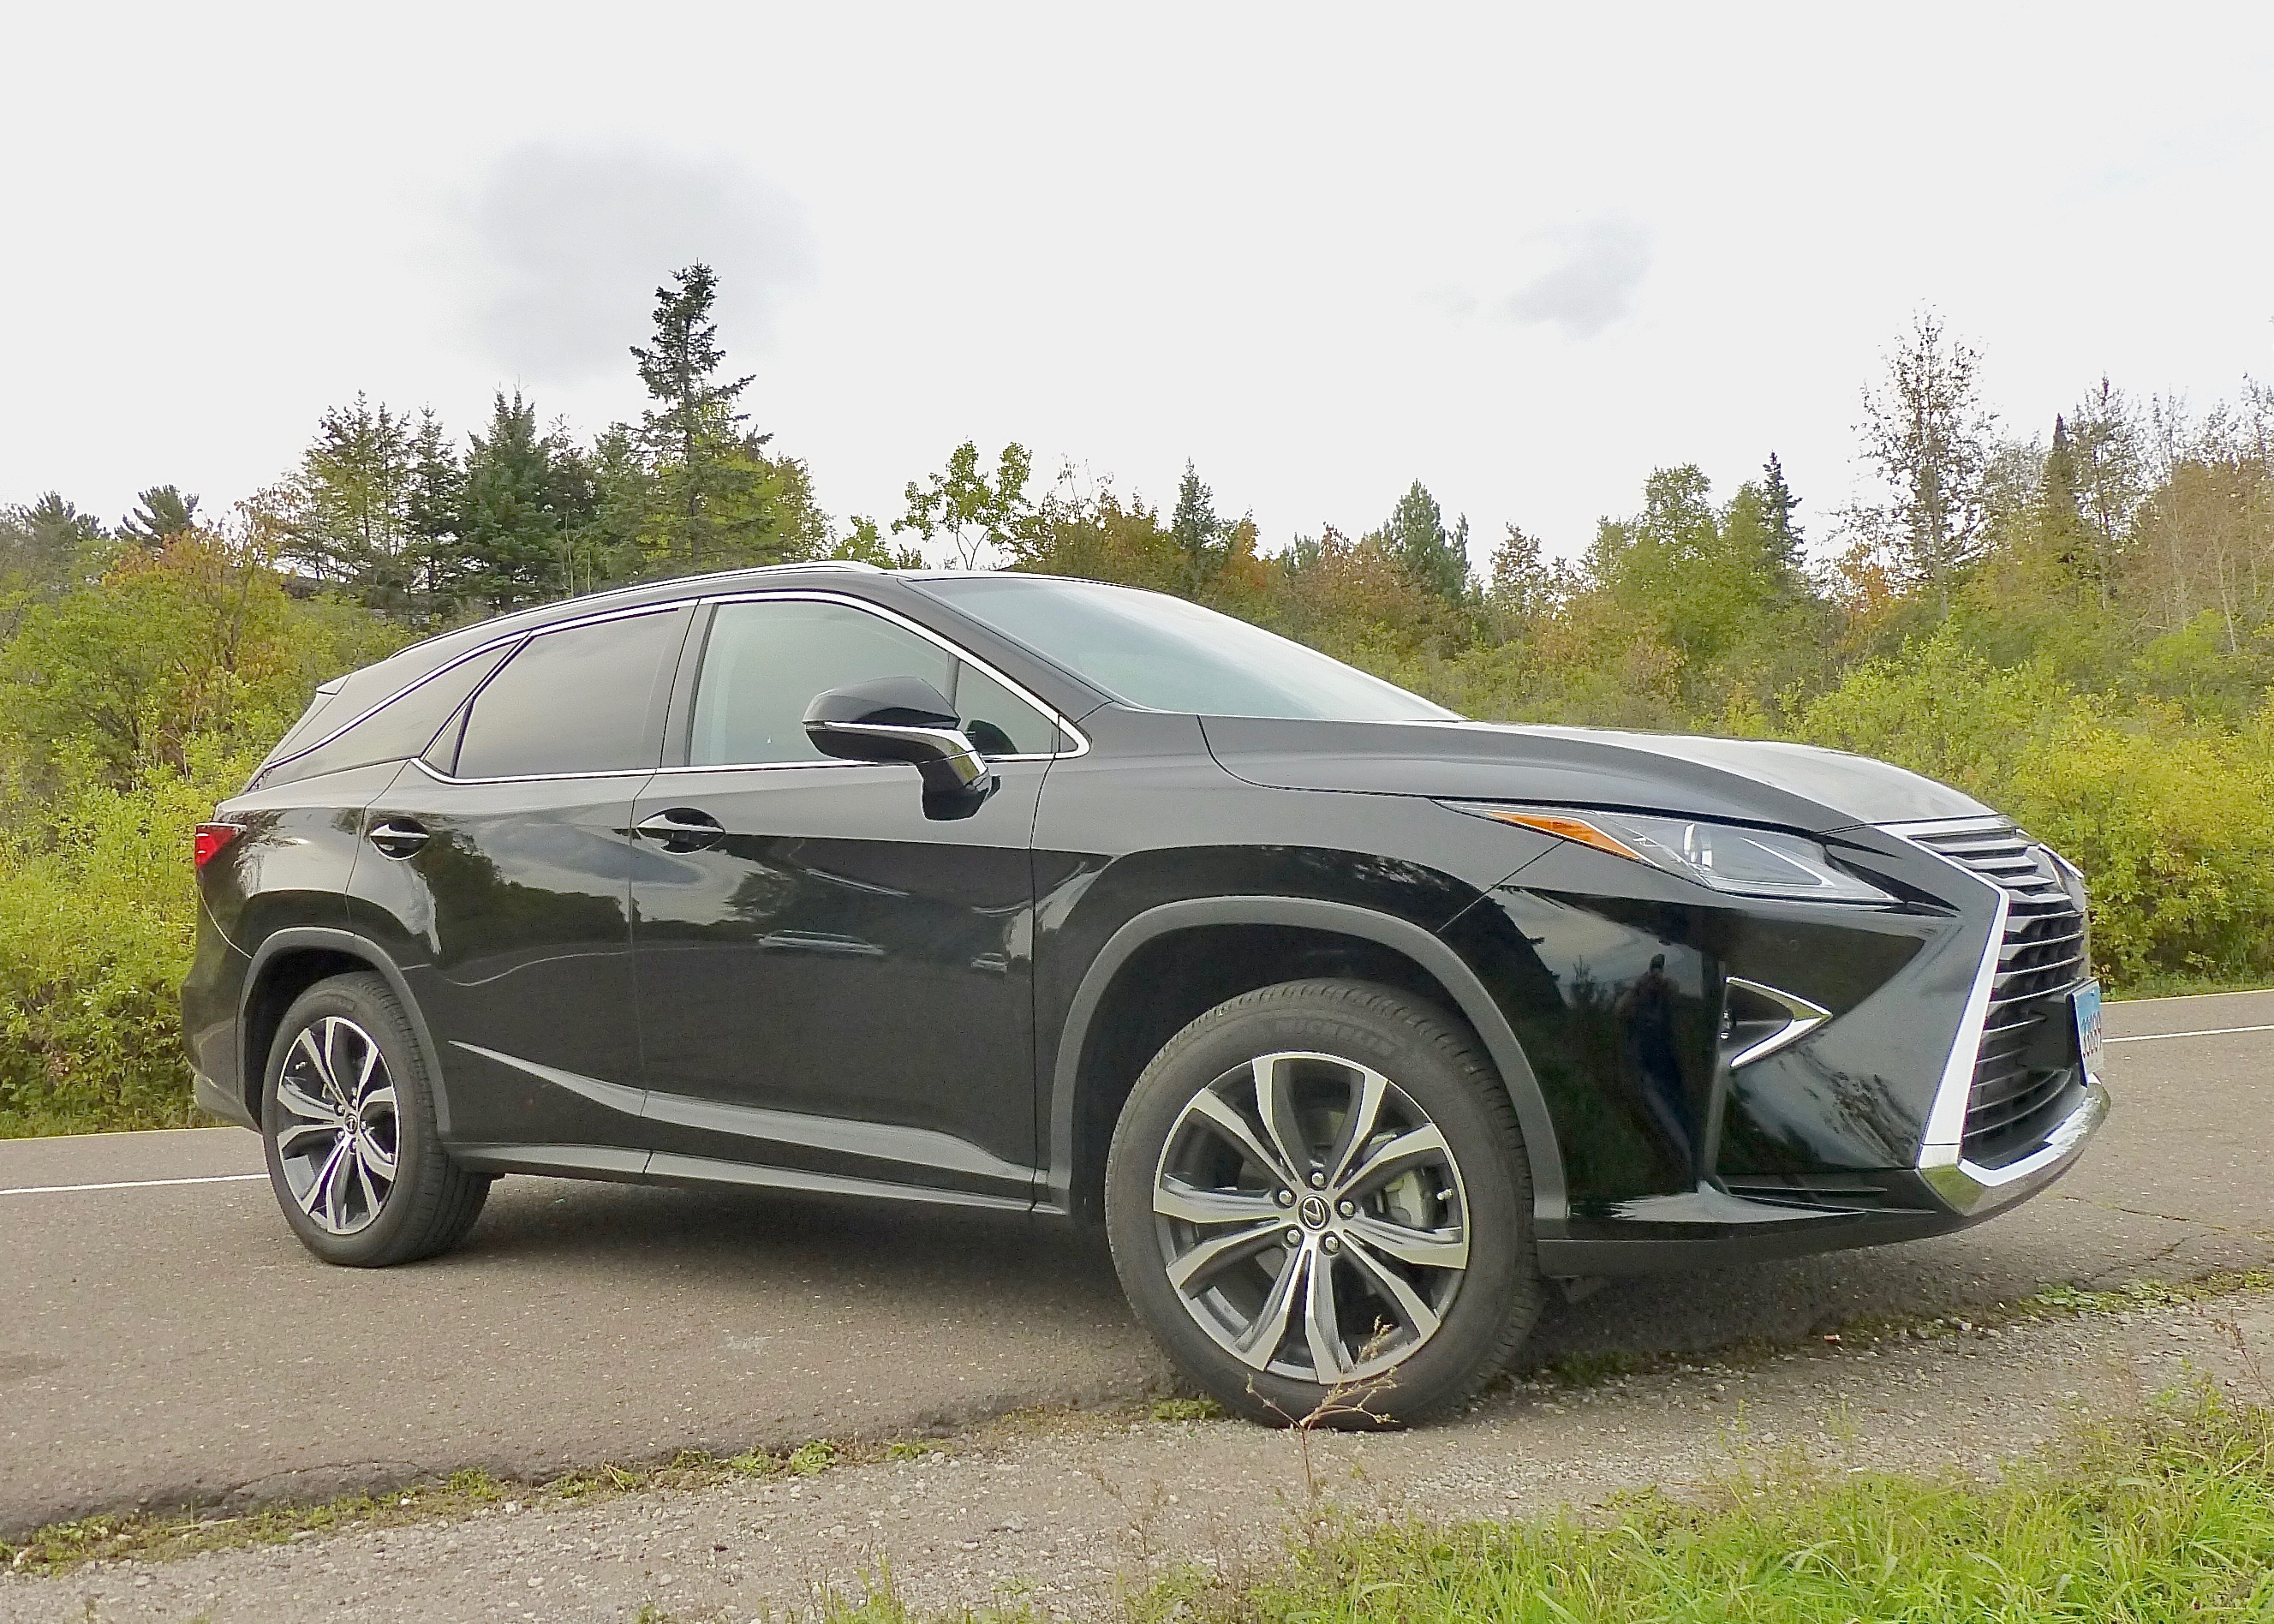 Comfort and classy features made the Lexus RX350-L a great long-distance ride, but beware of a stubborn nav system.